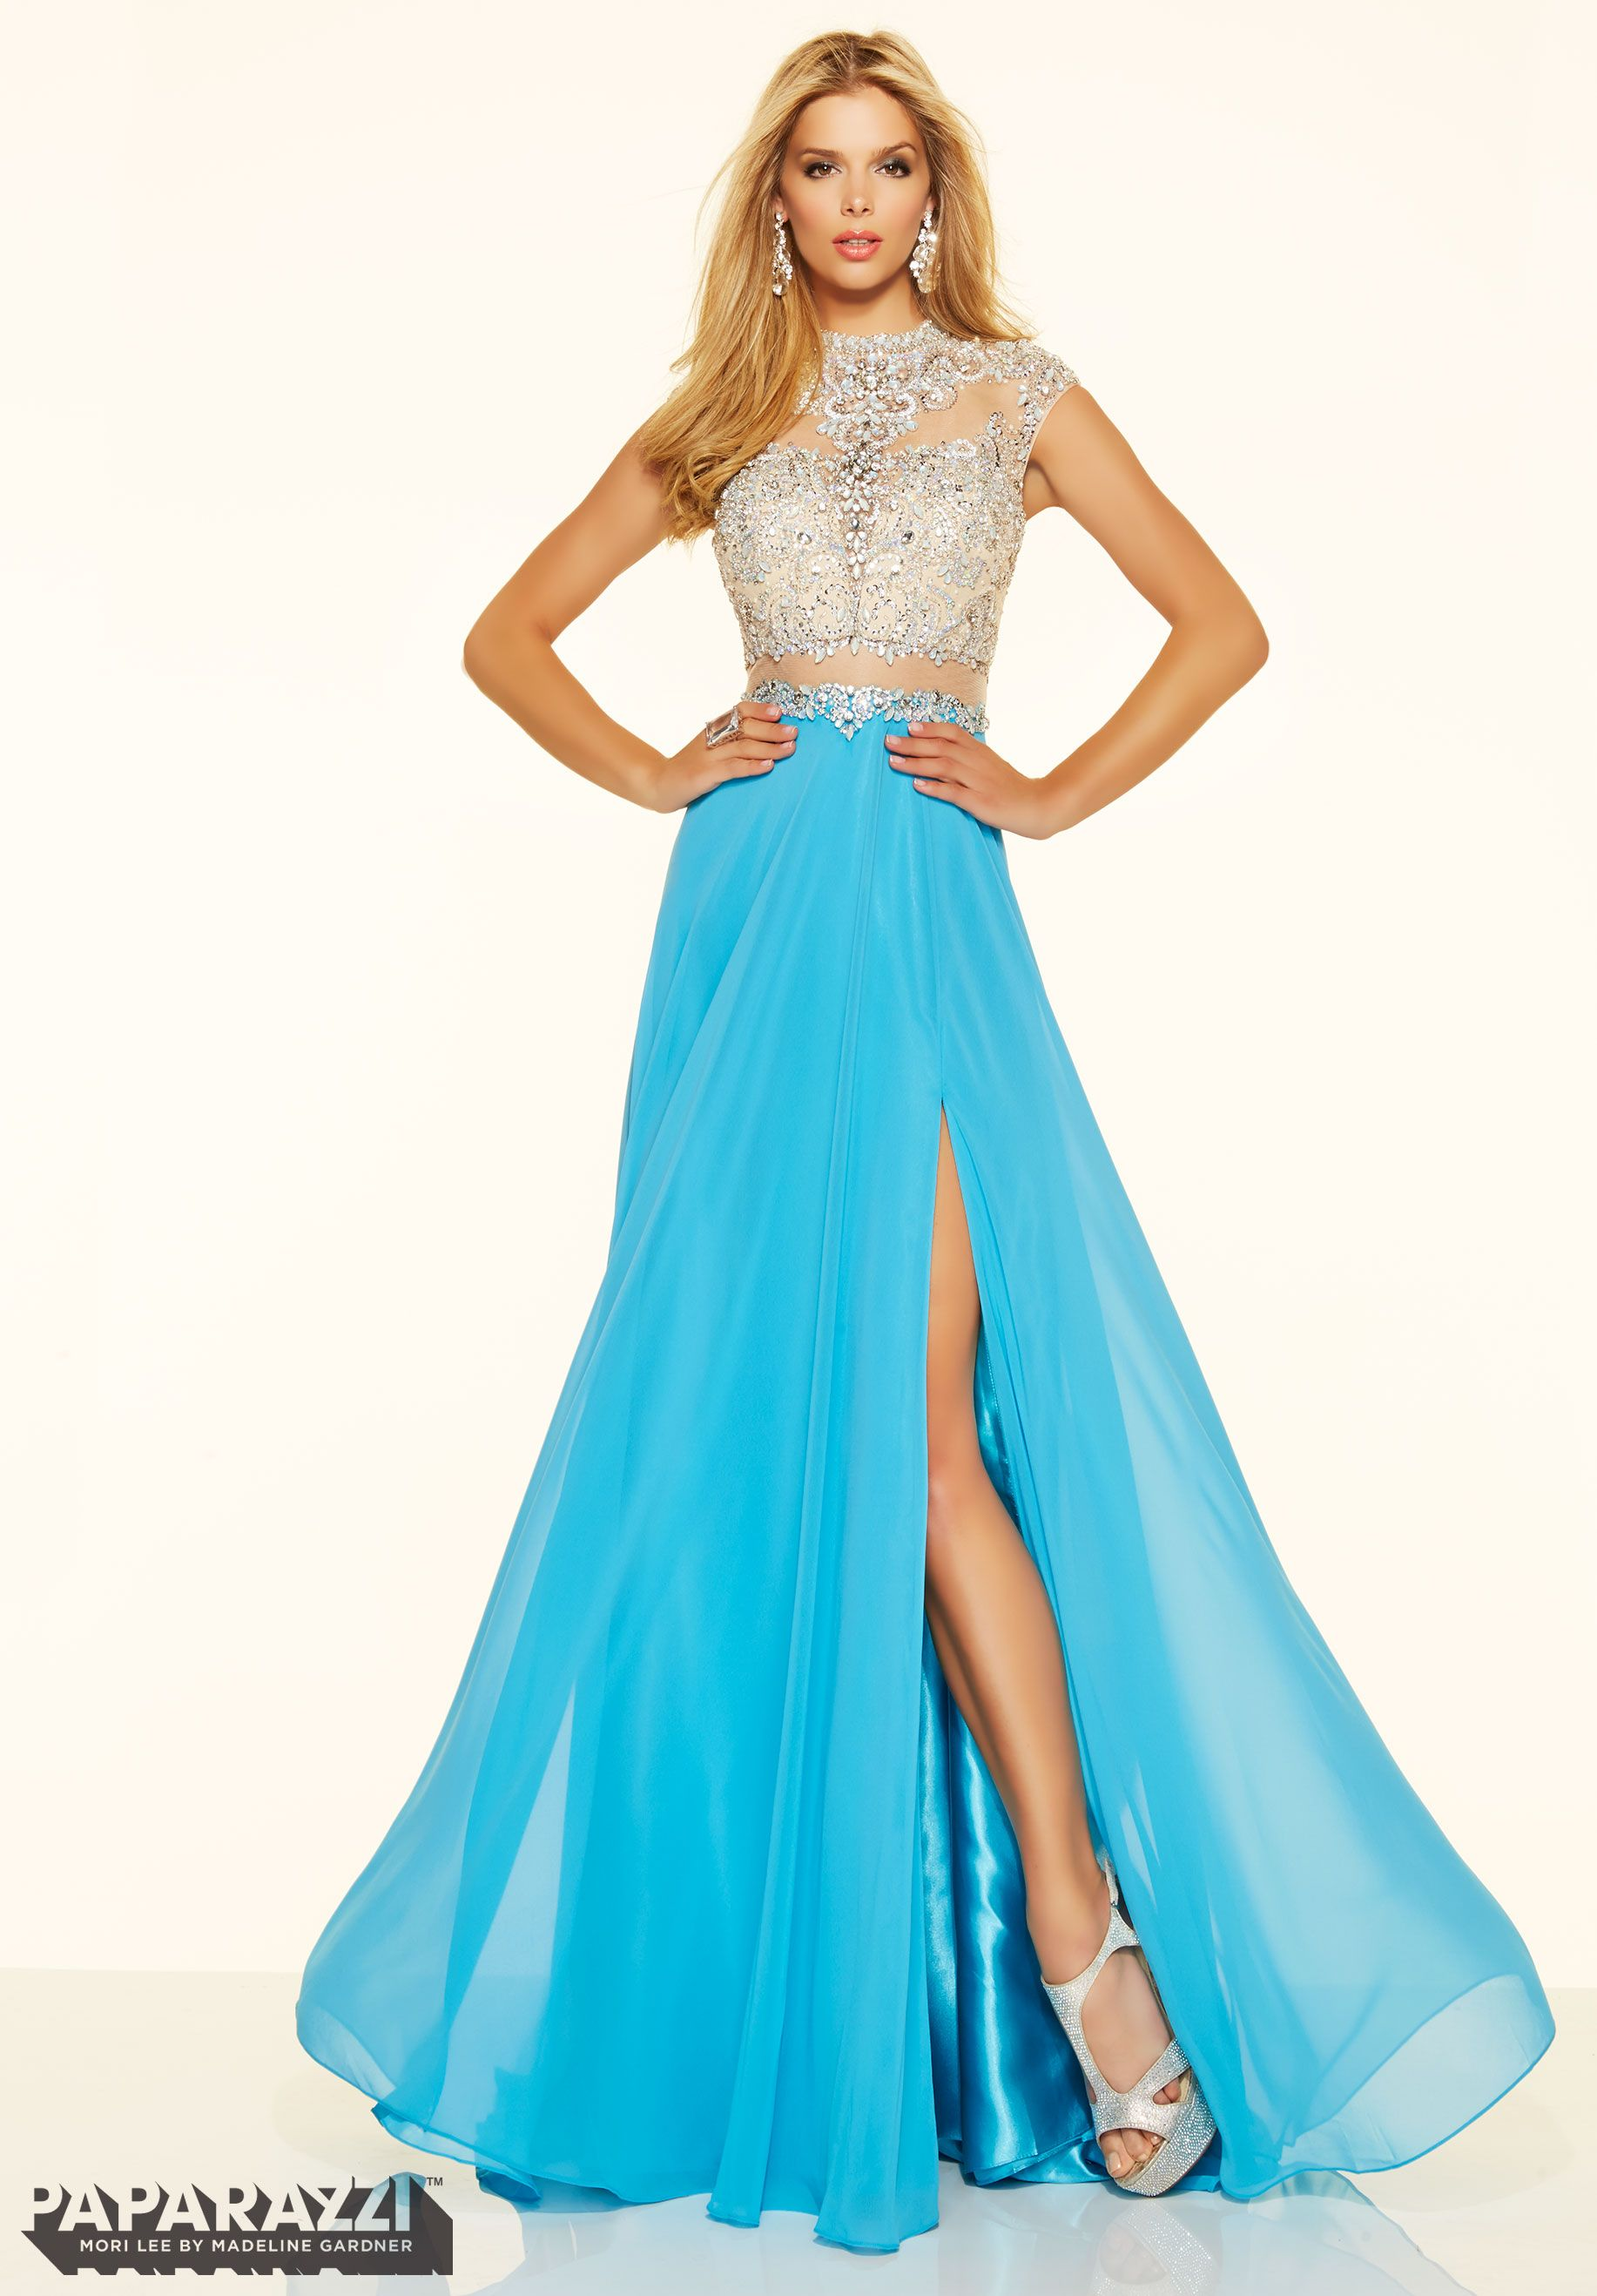 Available in Blue and White | winter wonderland | Pinterest | Prom ...